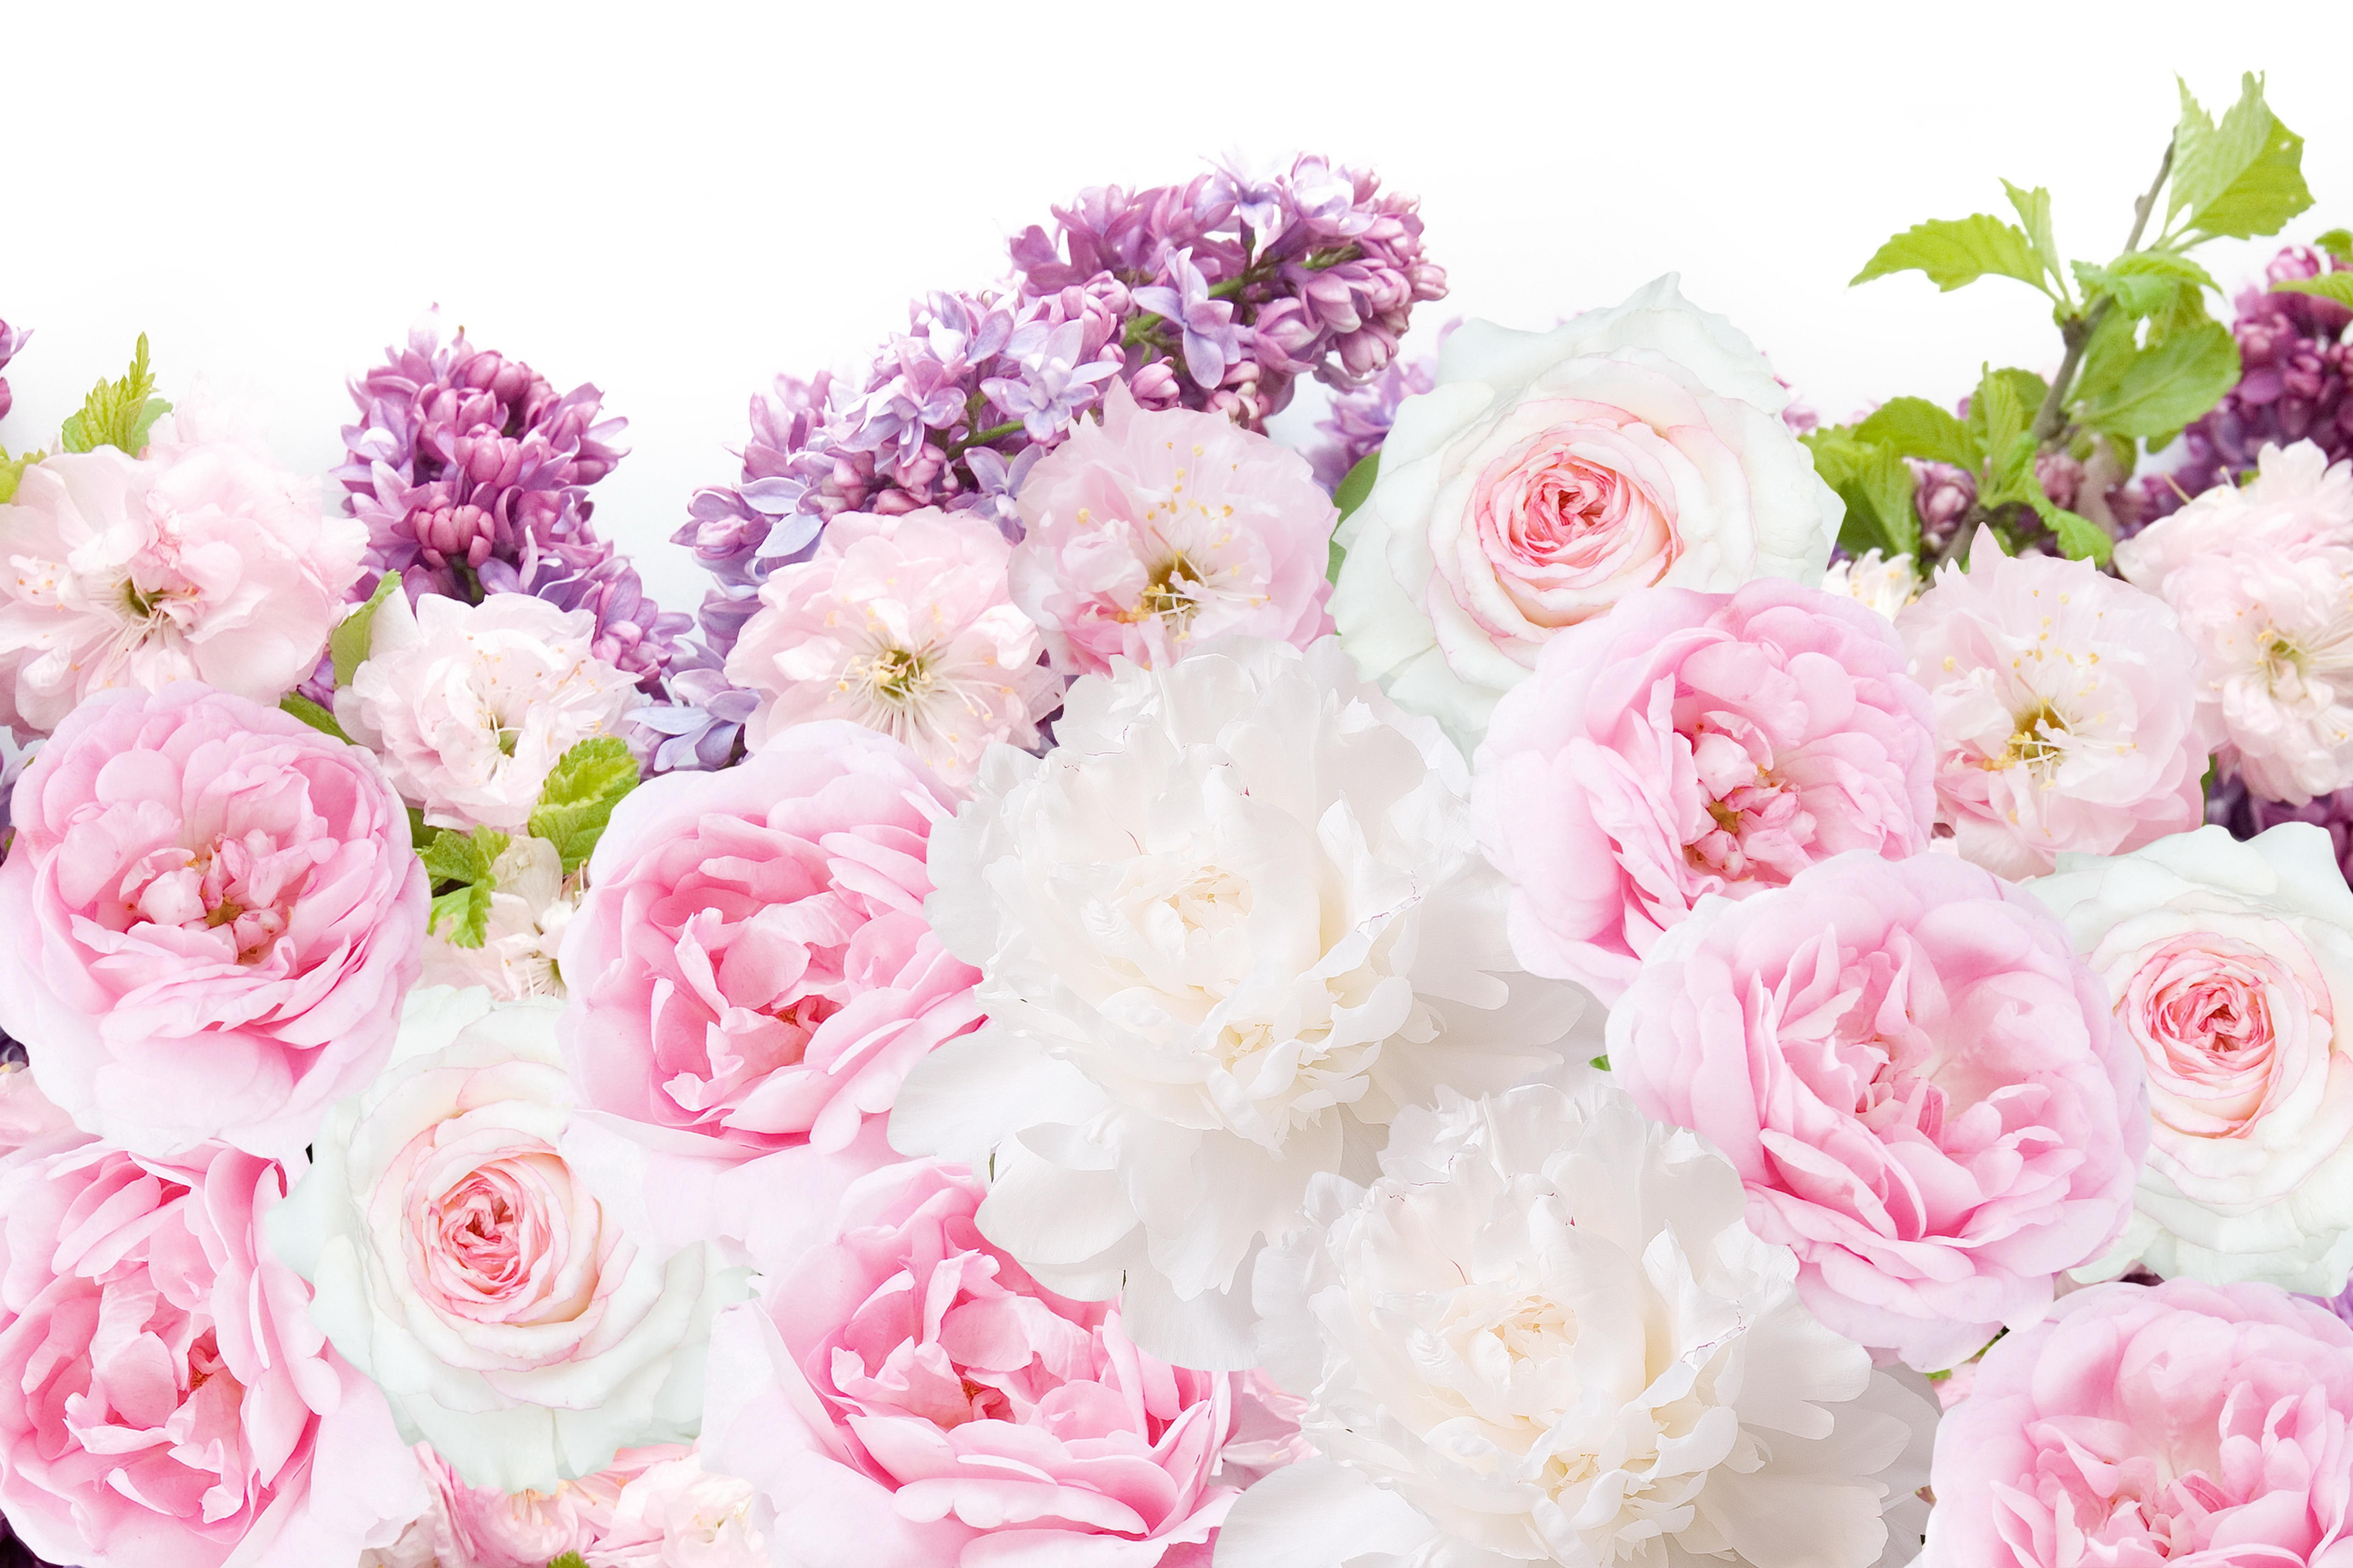 Peonies Clipart Vase Wallpaper Picture 162241 Peonies Clipart